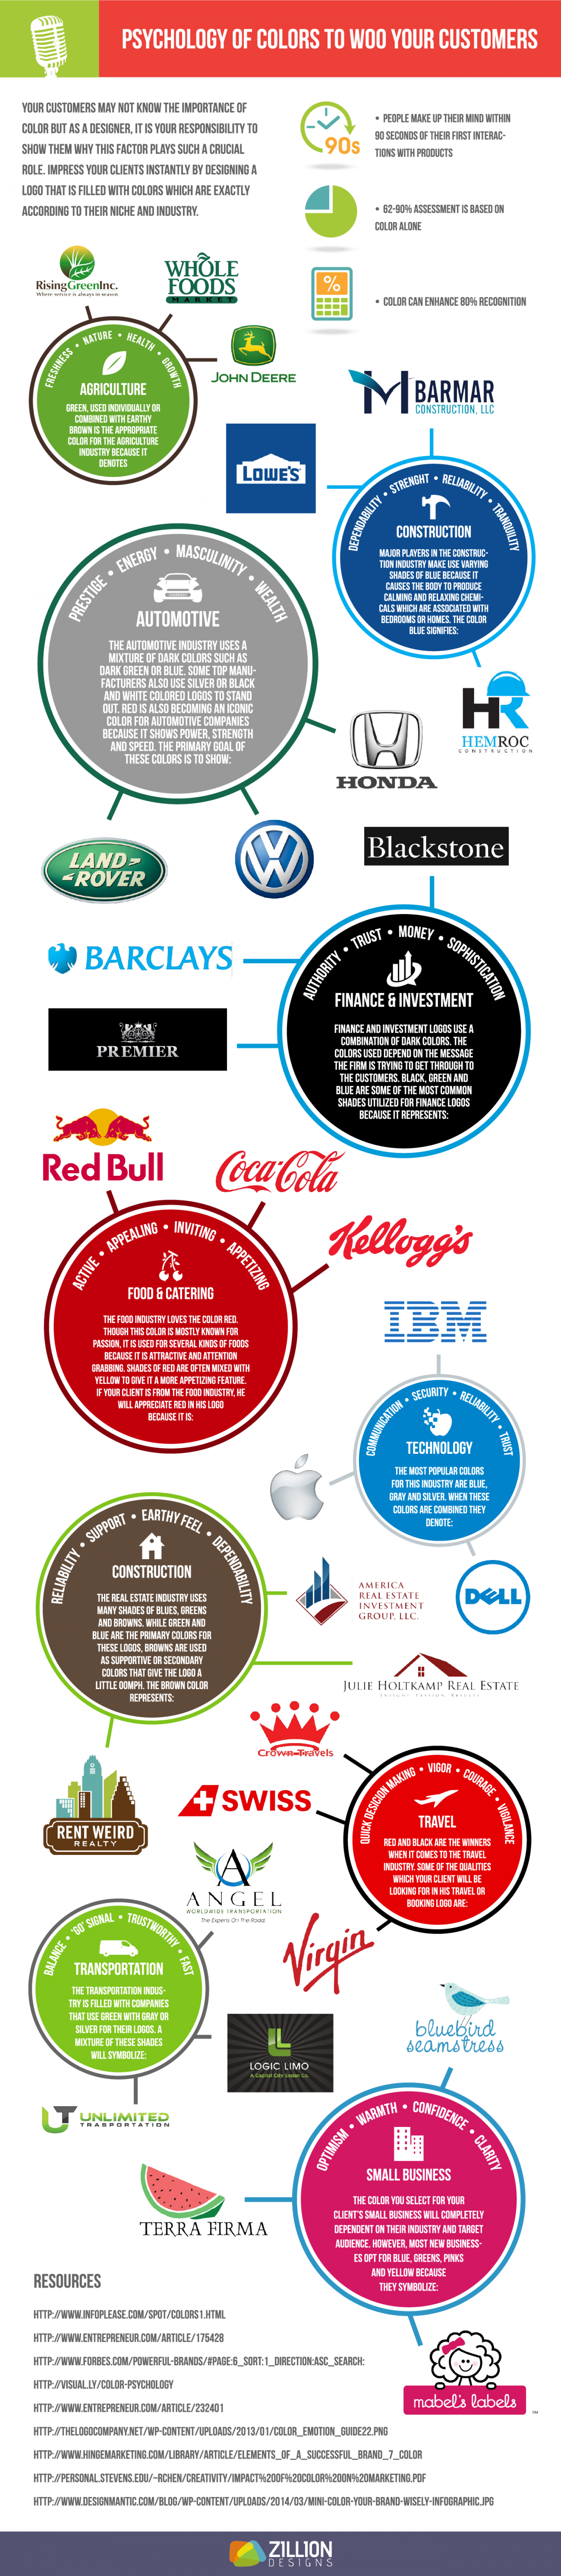 Psychology of Colors to Woo Your Customers Infographic